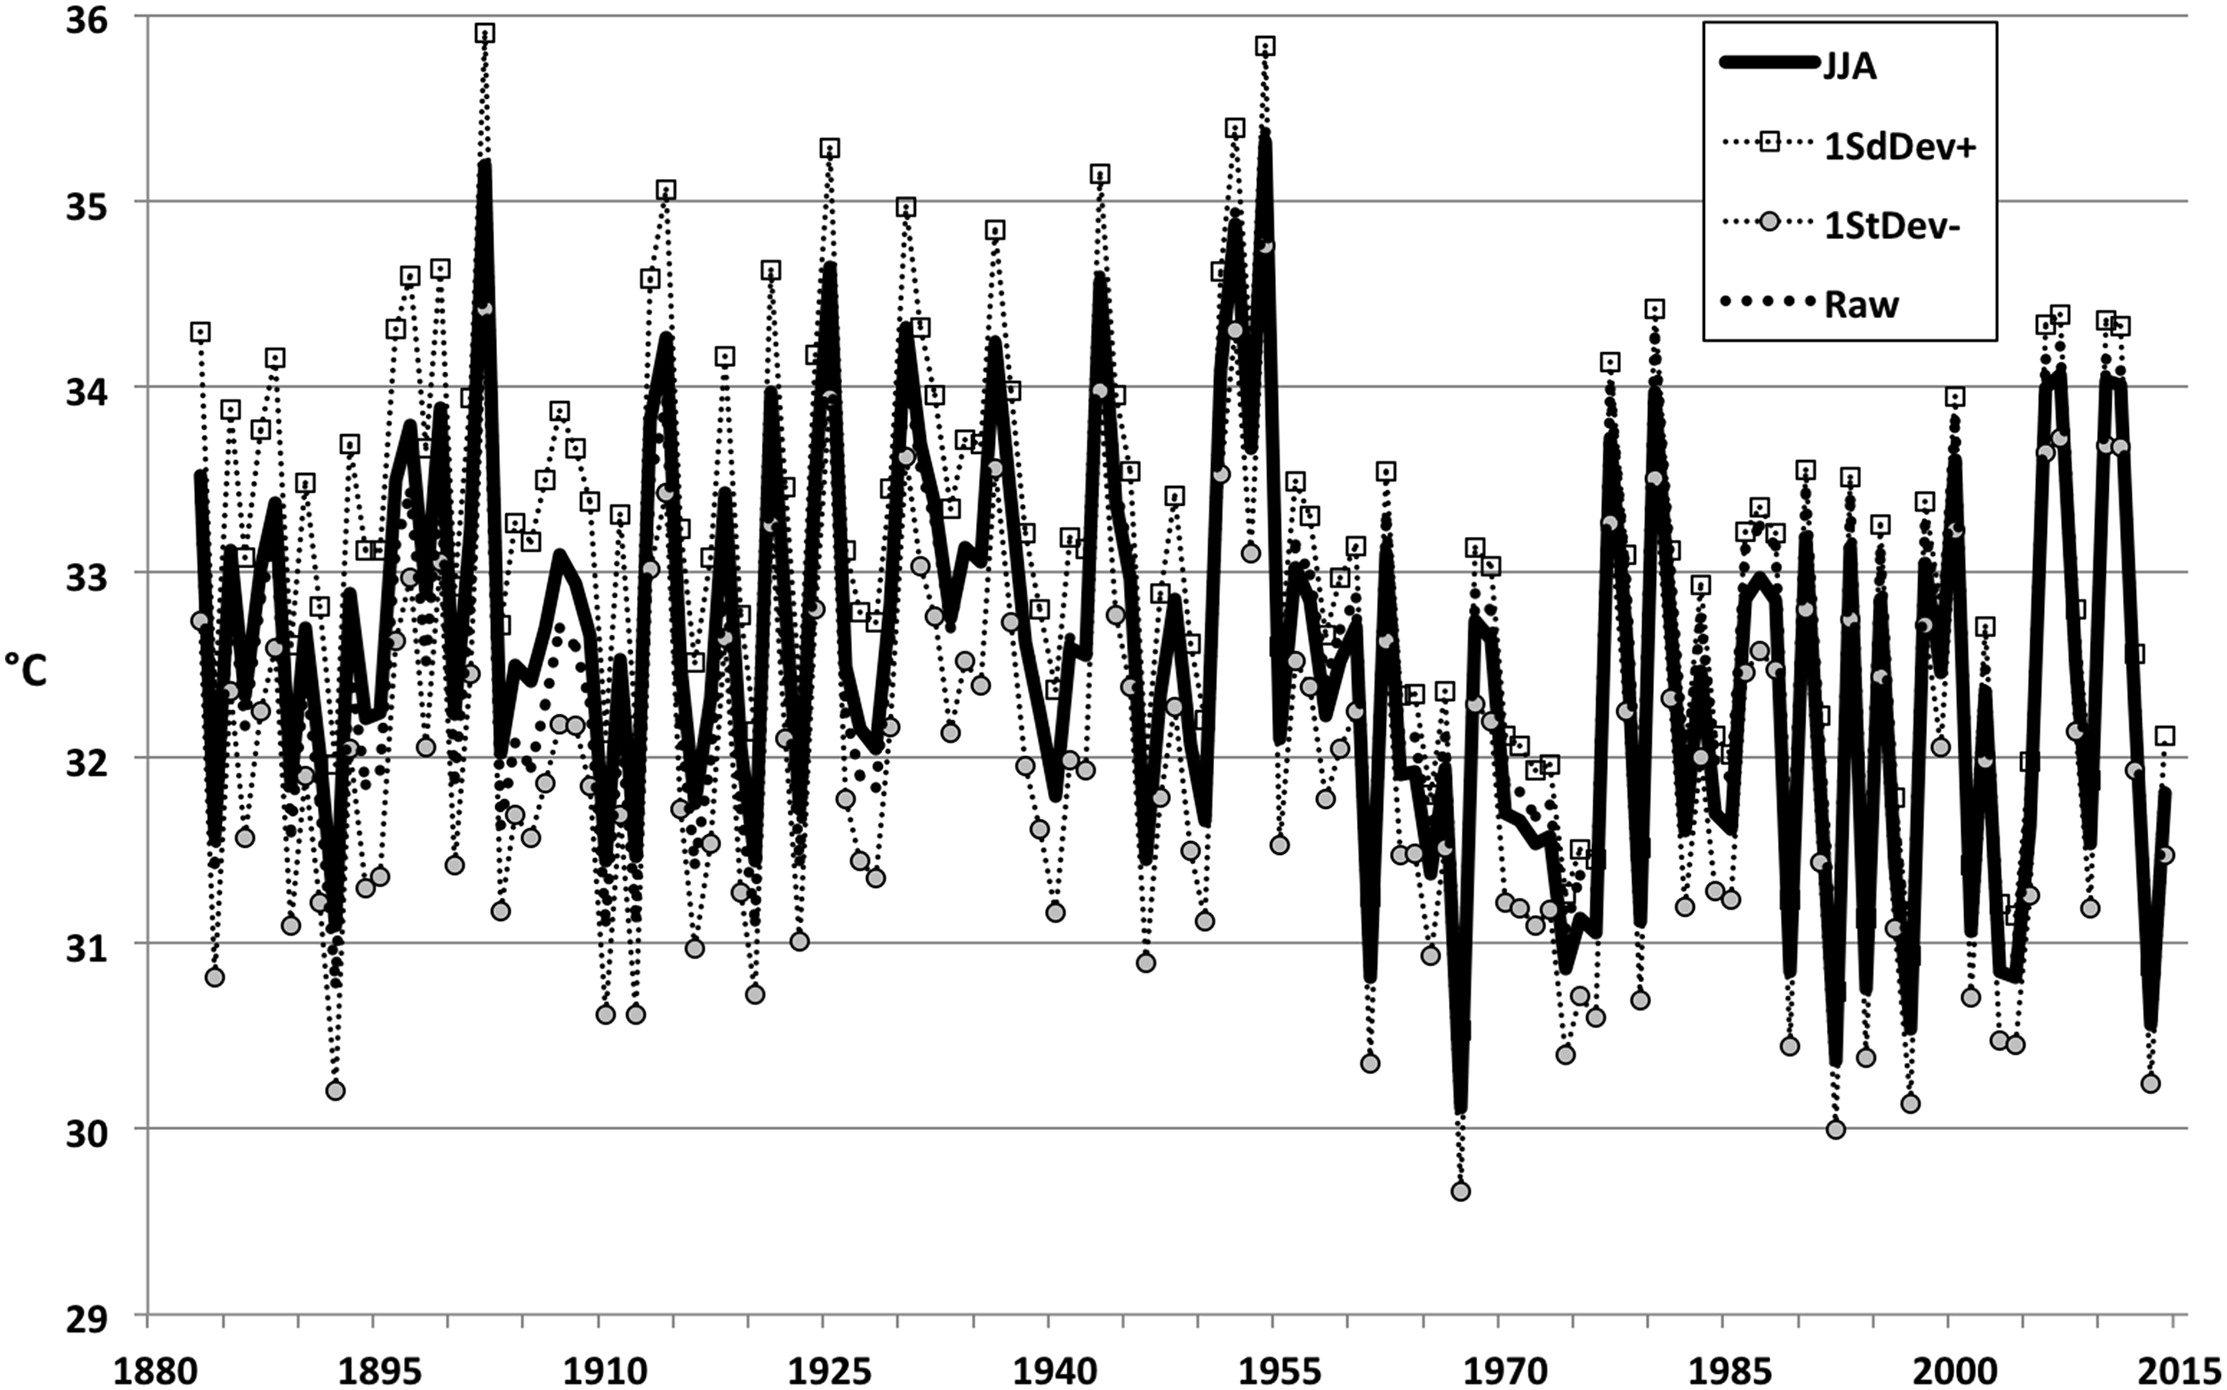 Fig. 8. Time series of the JJA TMax average of the median time series of the three metropolitan regions for reconstructions in the 80-km radius.